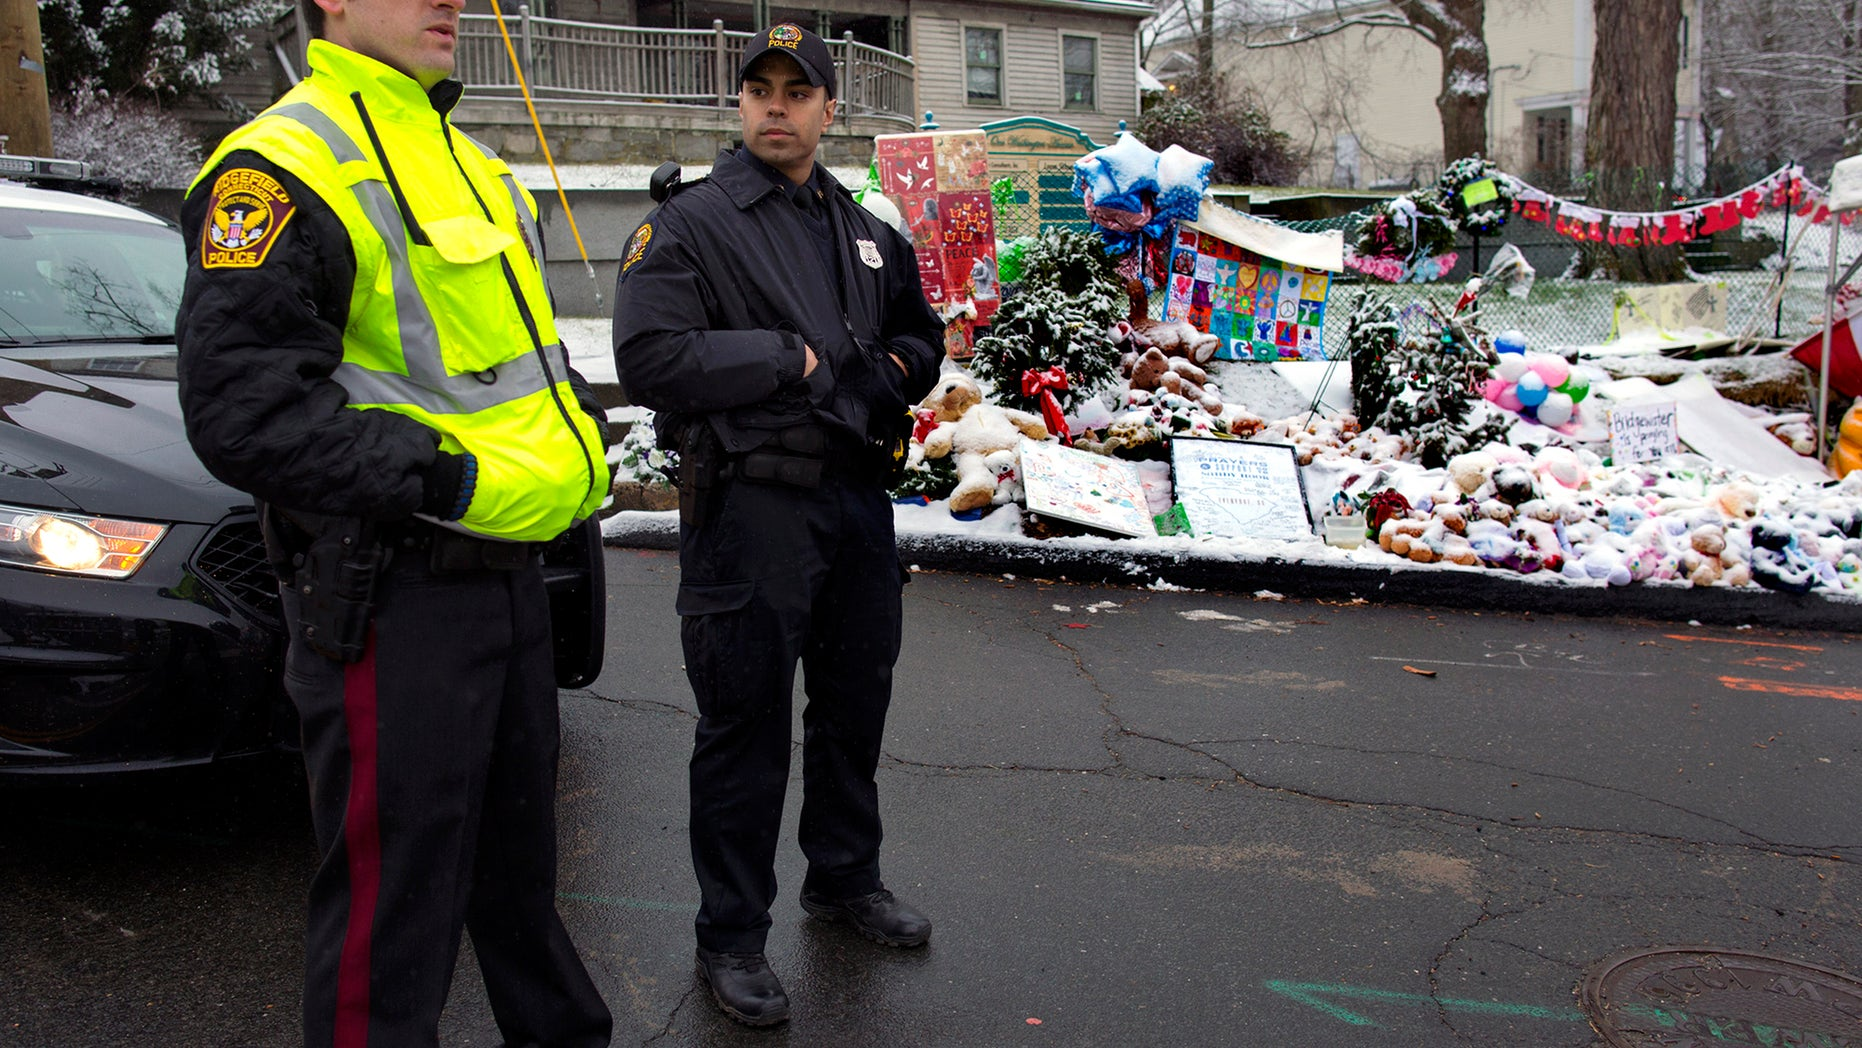 Dec. 25, 2012: From left, Town of Ridgefield, Conn., Det. Durling, and Town of Greenwich, Conn., Officer Rivera stand near a memorial in Newtown, Conn. Regional police agencies arrived in Newtown to relieve the local police force for the Christmas holiday.